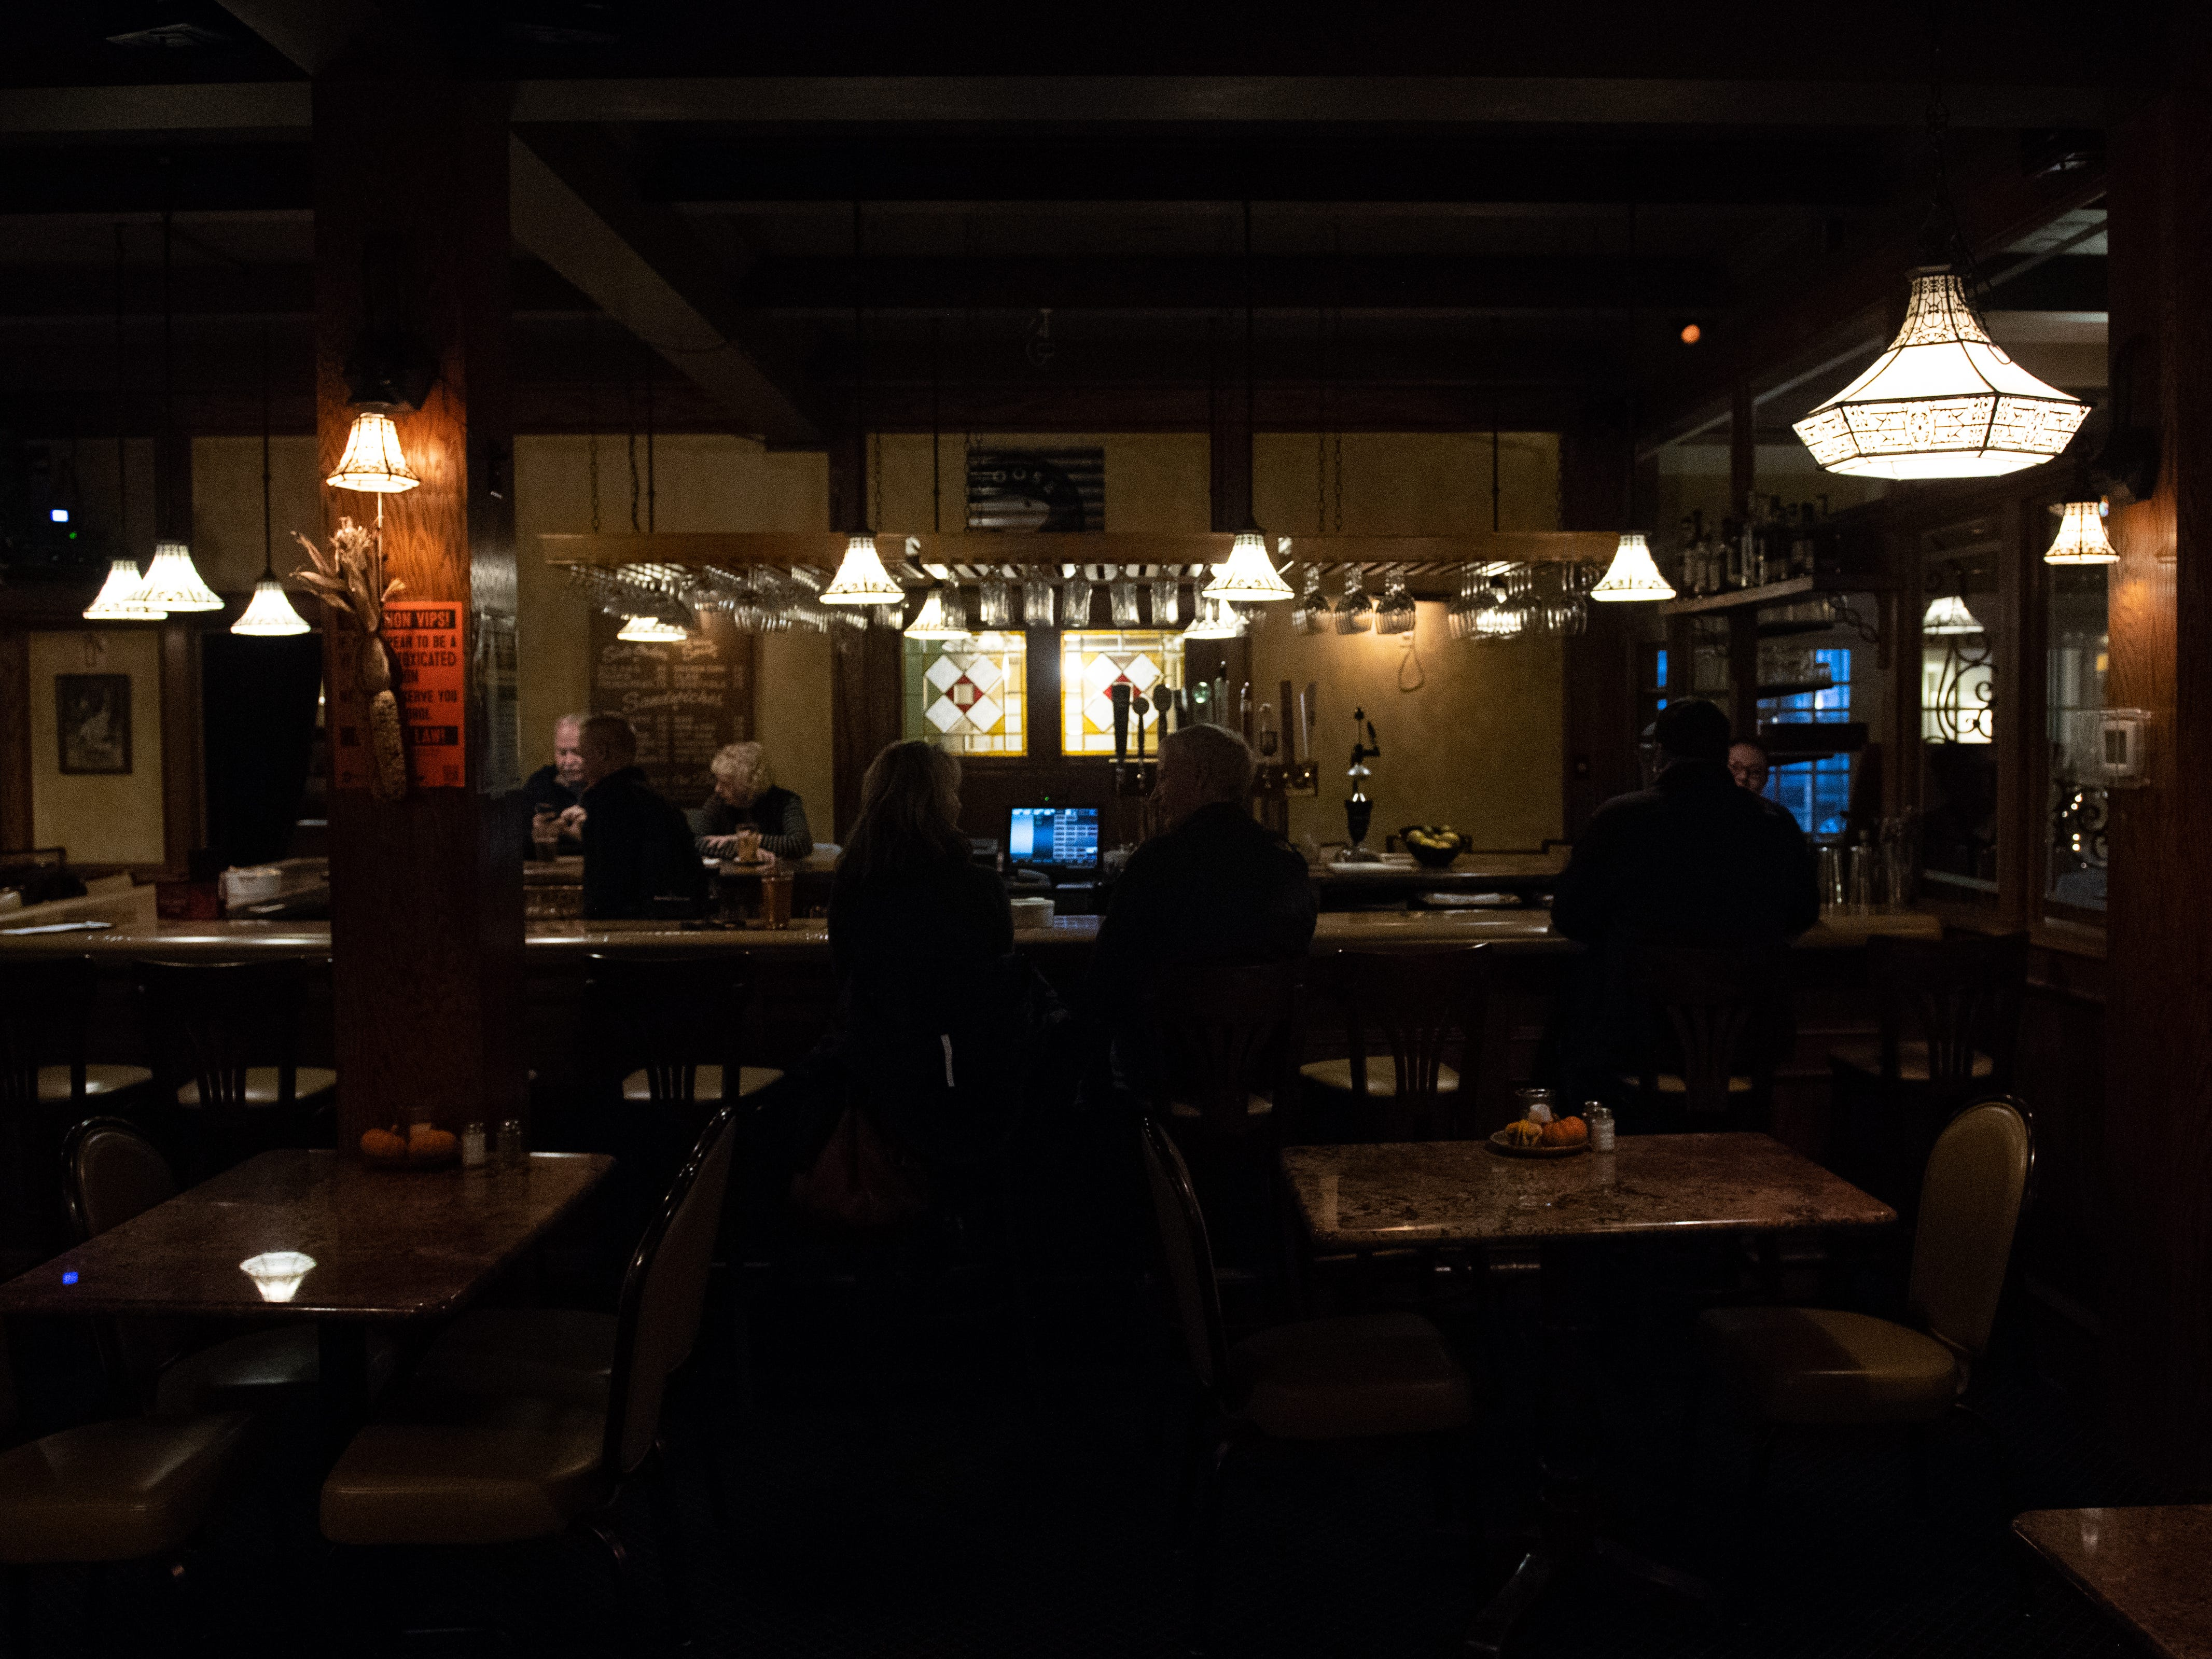 Roosevelt Tavern is dimly lit, adding to the restaurant's ambiance, November 9, 2018.